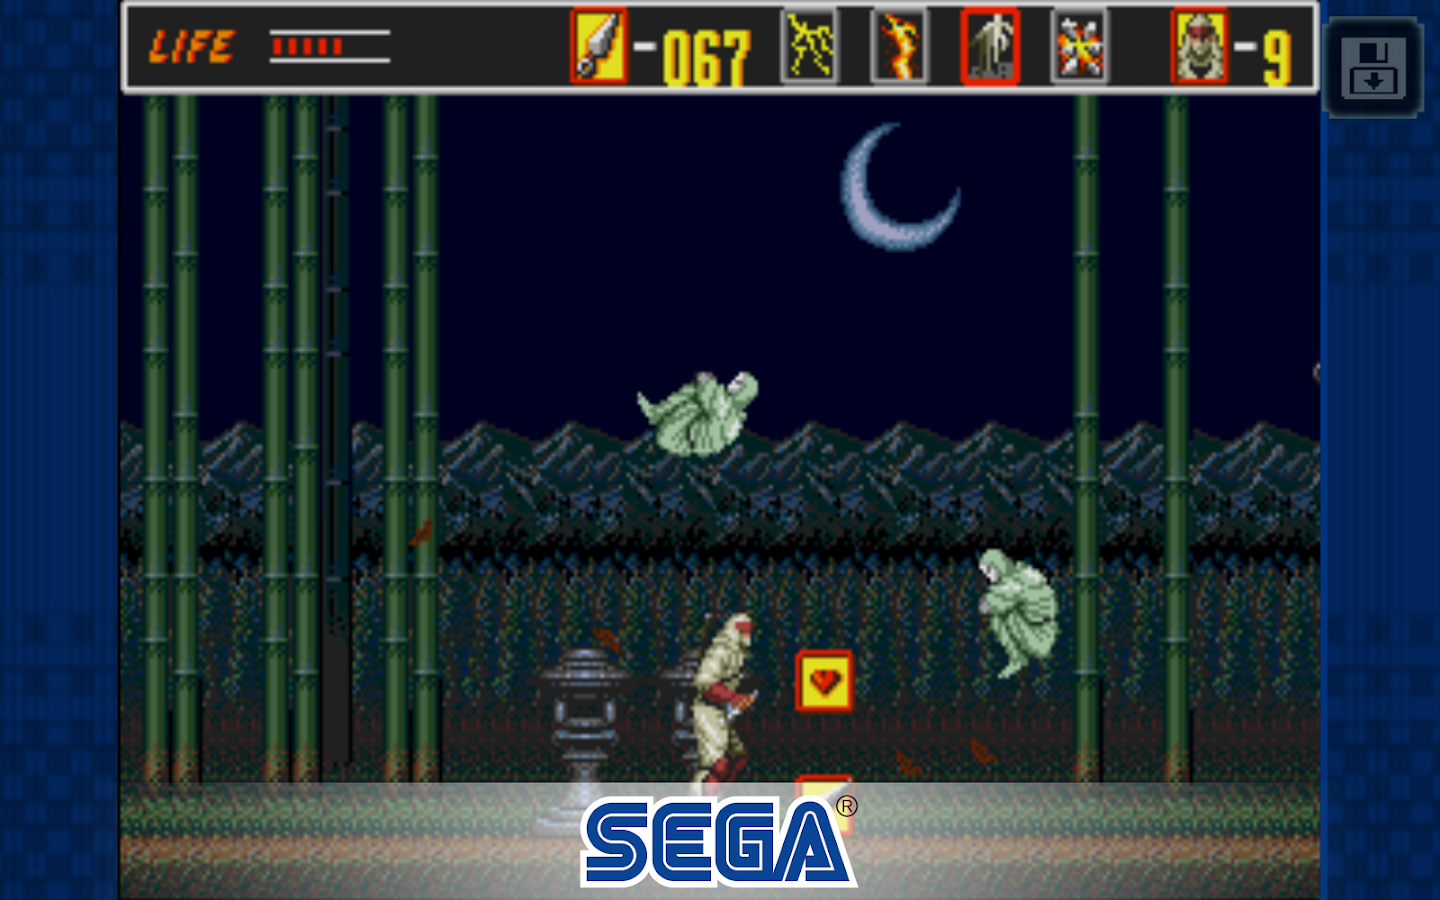 The Revenge of Shinobi Classic Screenshot 10